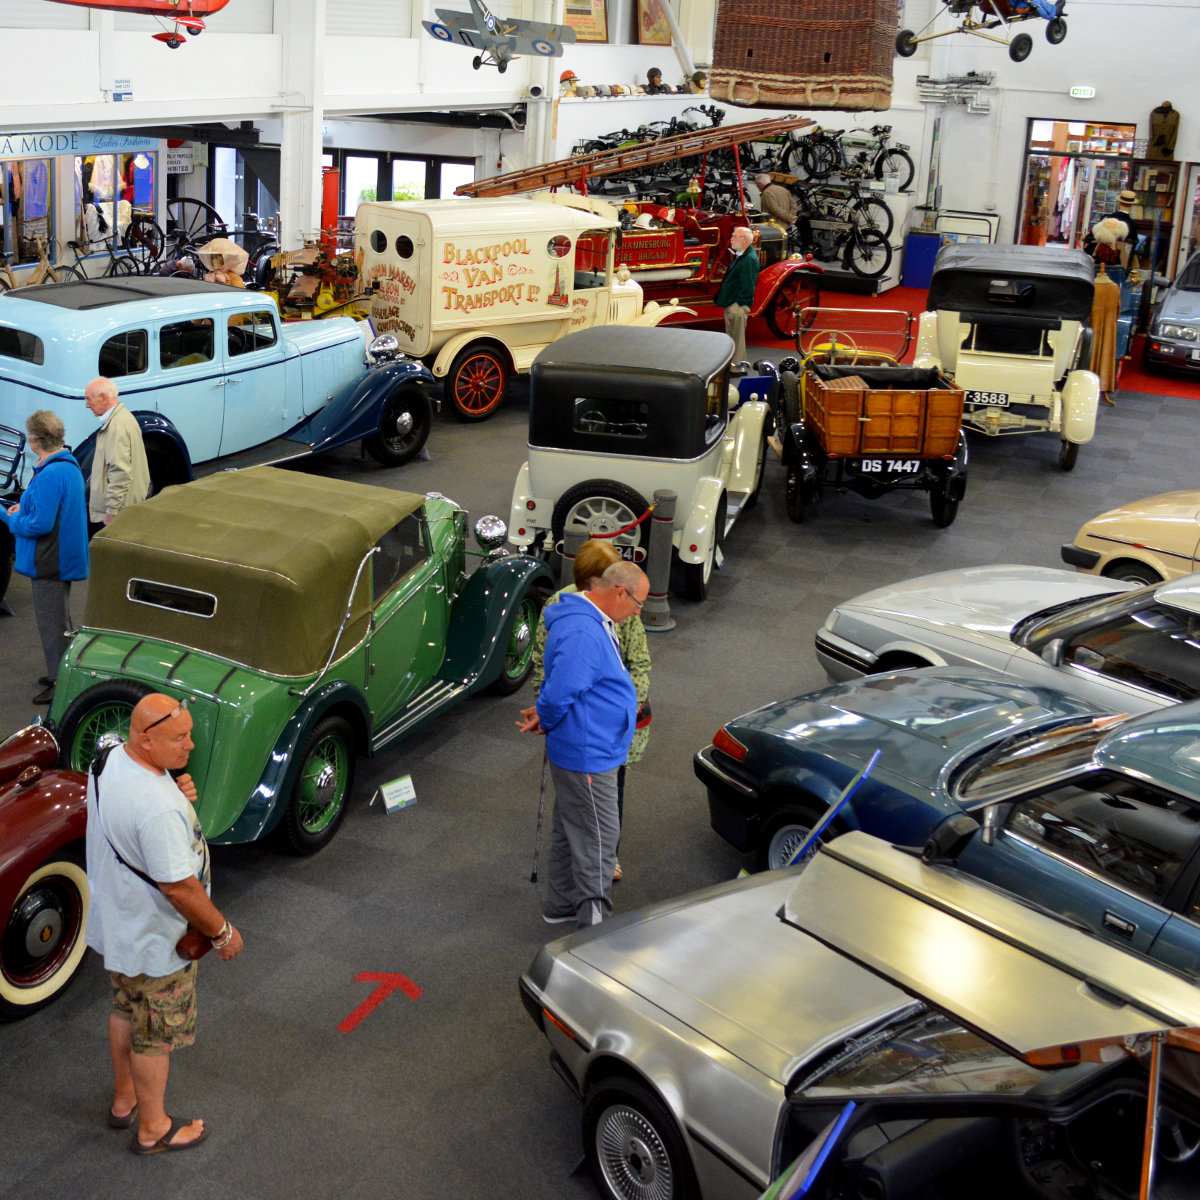 The Lakeland Motor Museum boasts more than 30,000 exhibits.